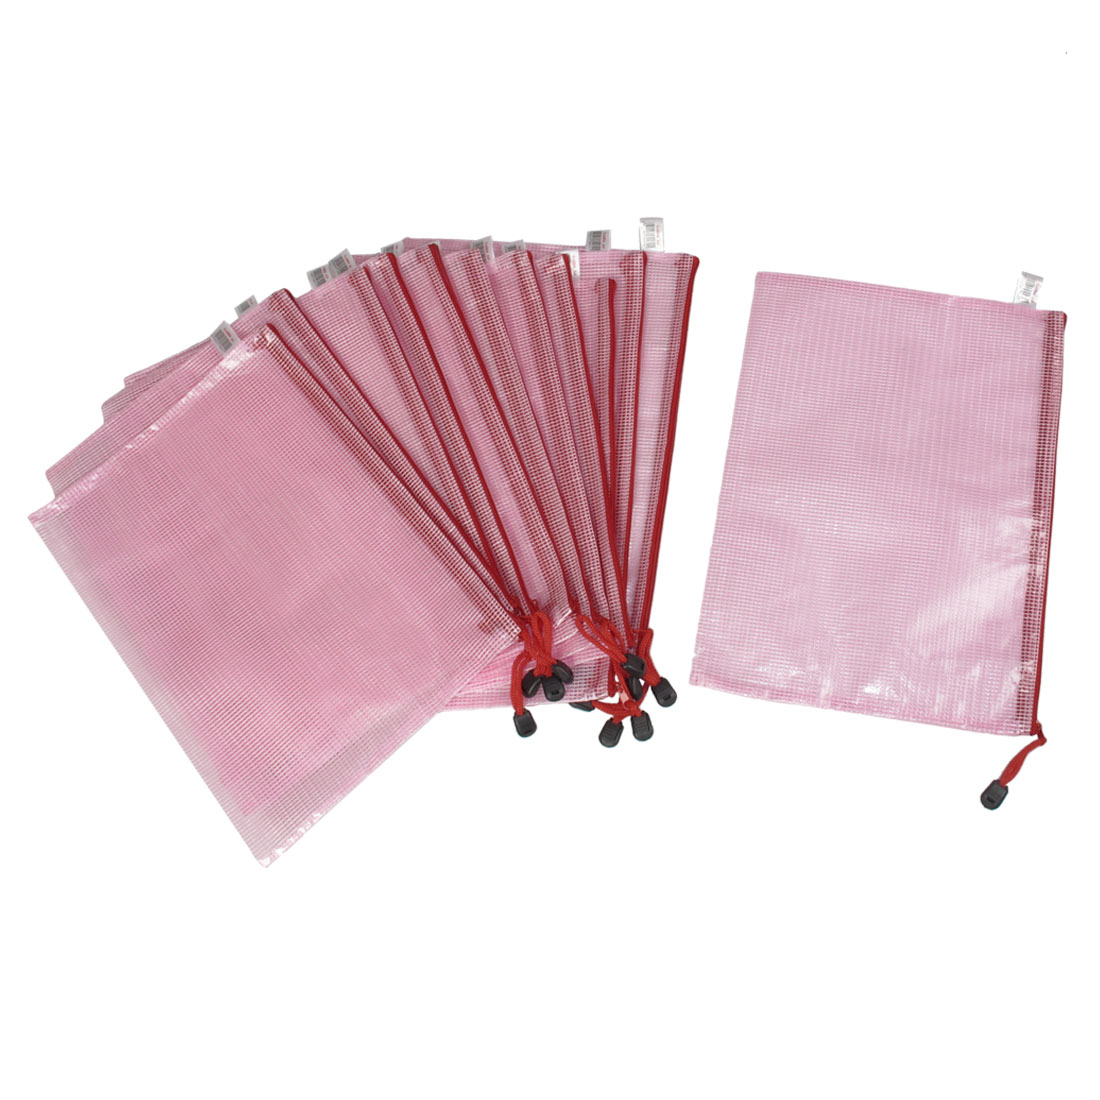 Student Office A4 Paper Document Zippered Folders Pockets Bags Pink 12pcs